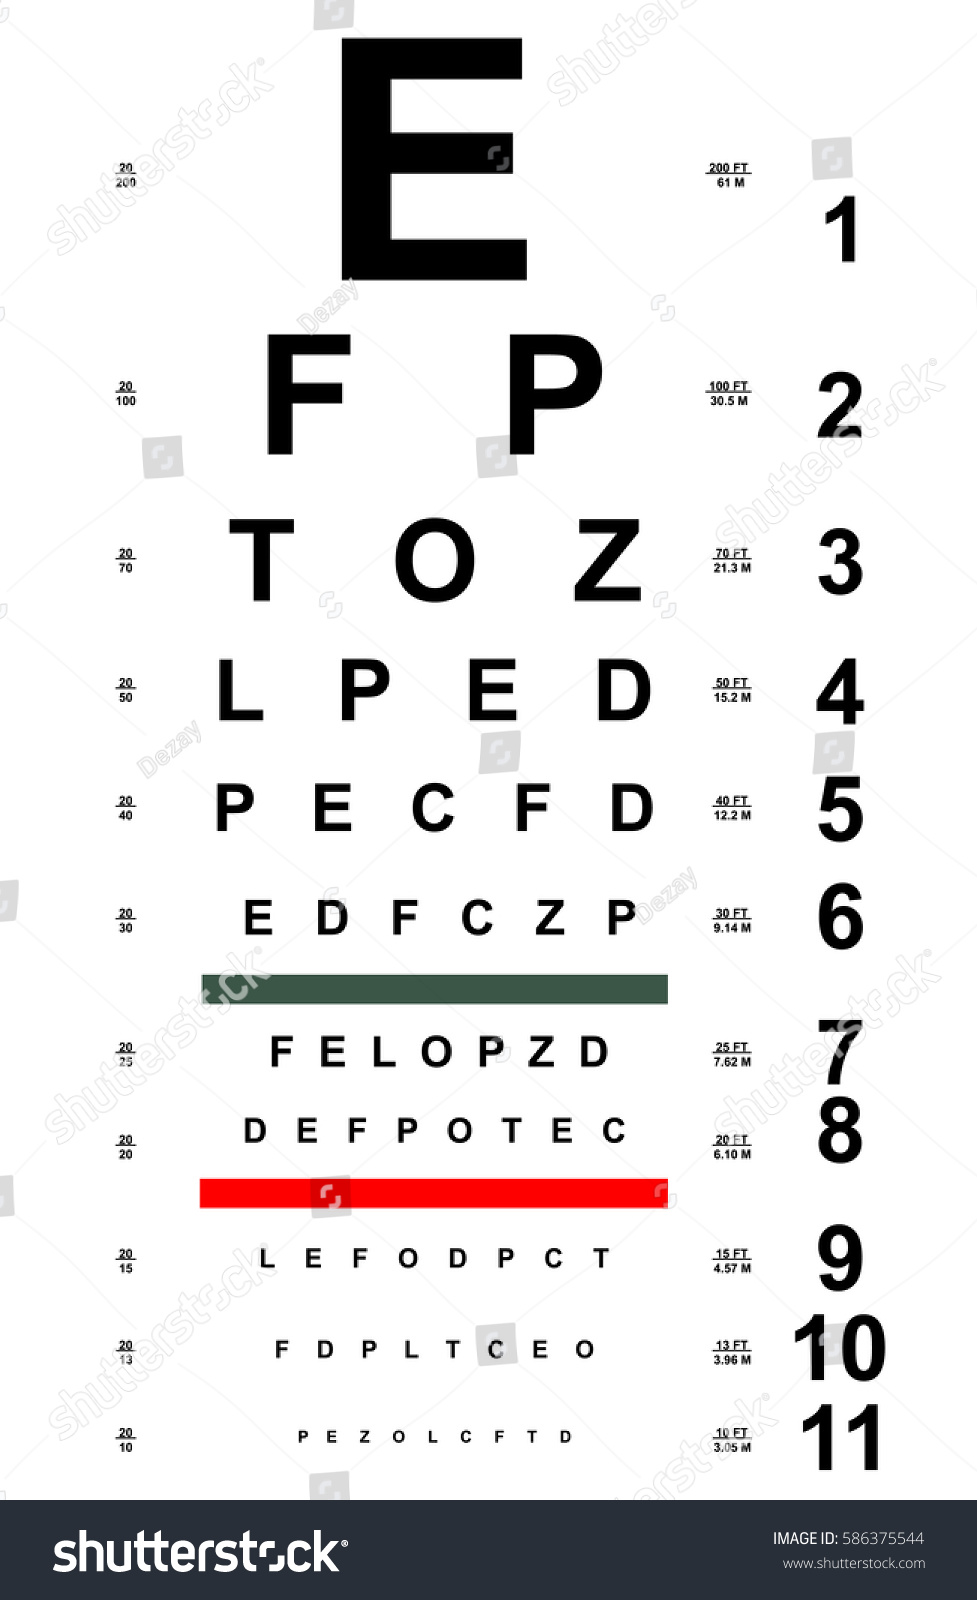 Chart test table letters eye examination stock vector 586375544 chart test table with letters for eye examination eye chart test for ophthalmologist doctor geenschuldenfo Gallery